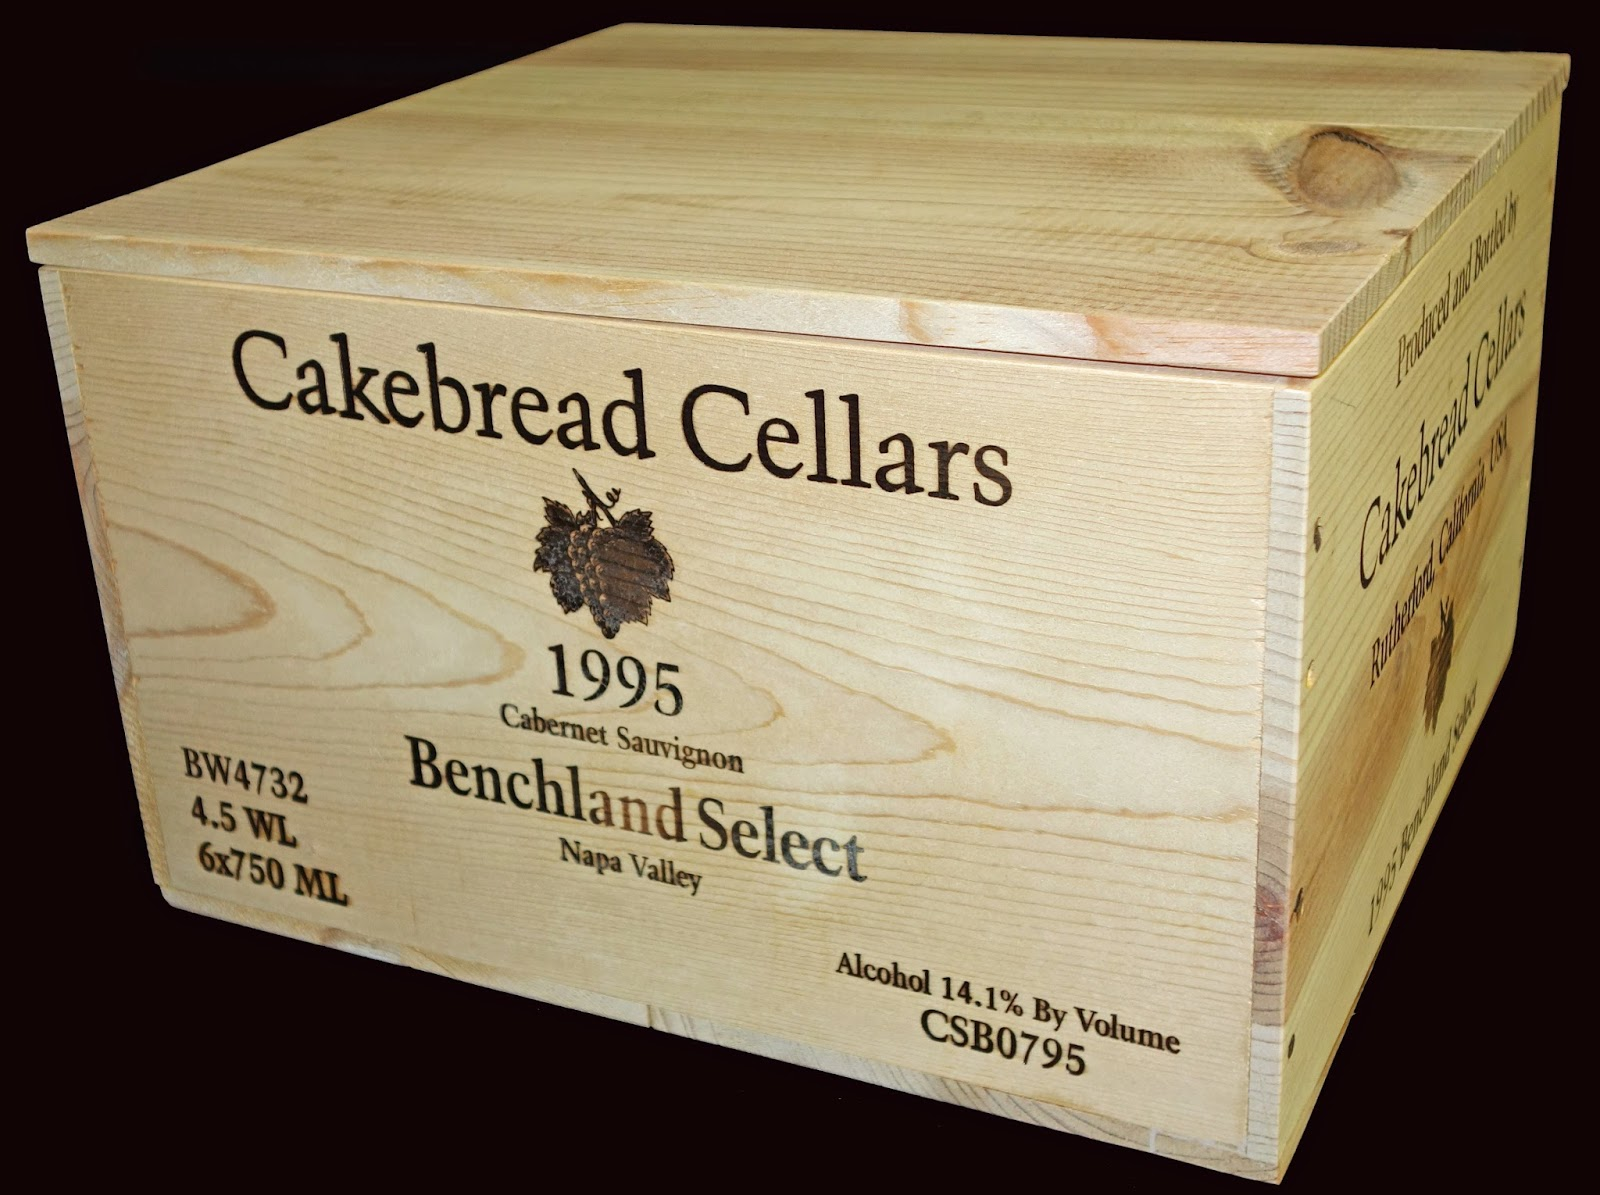 The Cakebread Cellars Wine Box & Wooden Wine Boxes u0026 Wine Crates: The Cakebread Cellars Wine Box